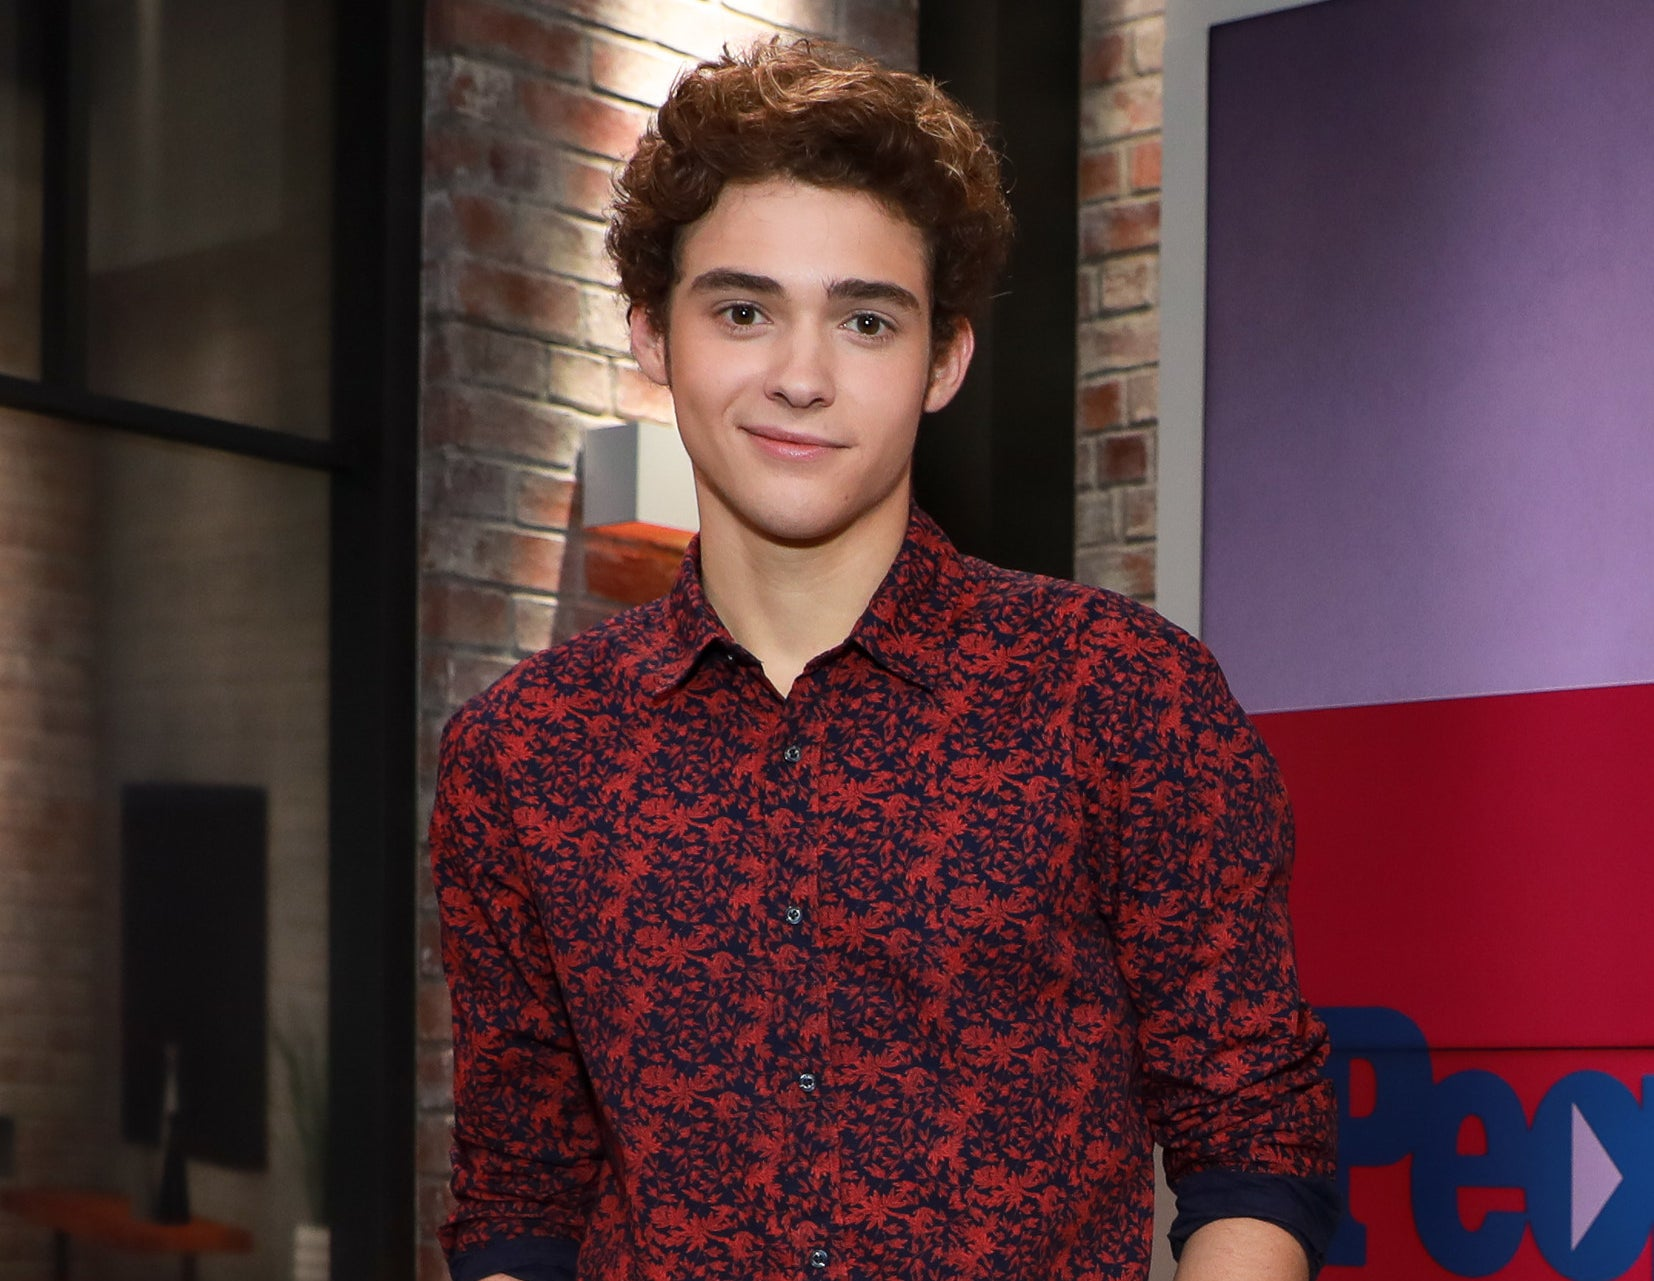 Joshua wears a red and blue floral patterned button down